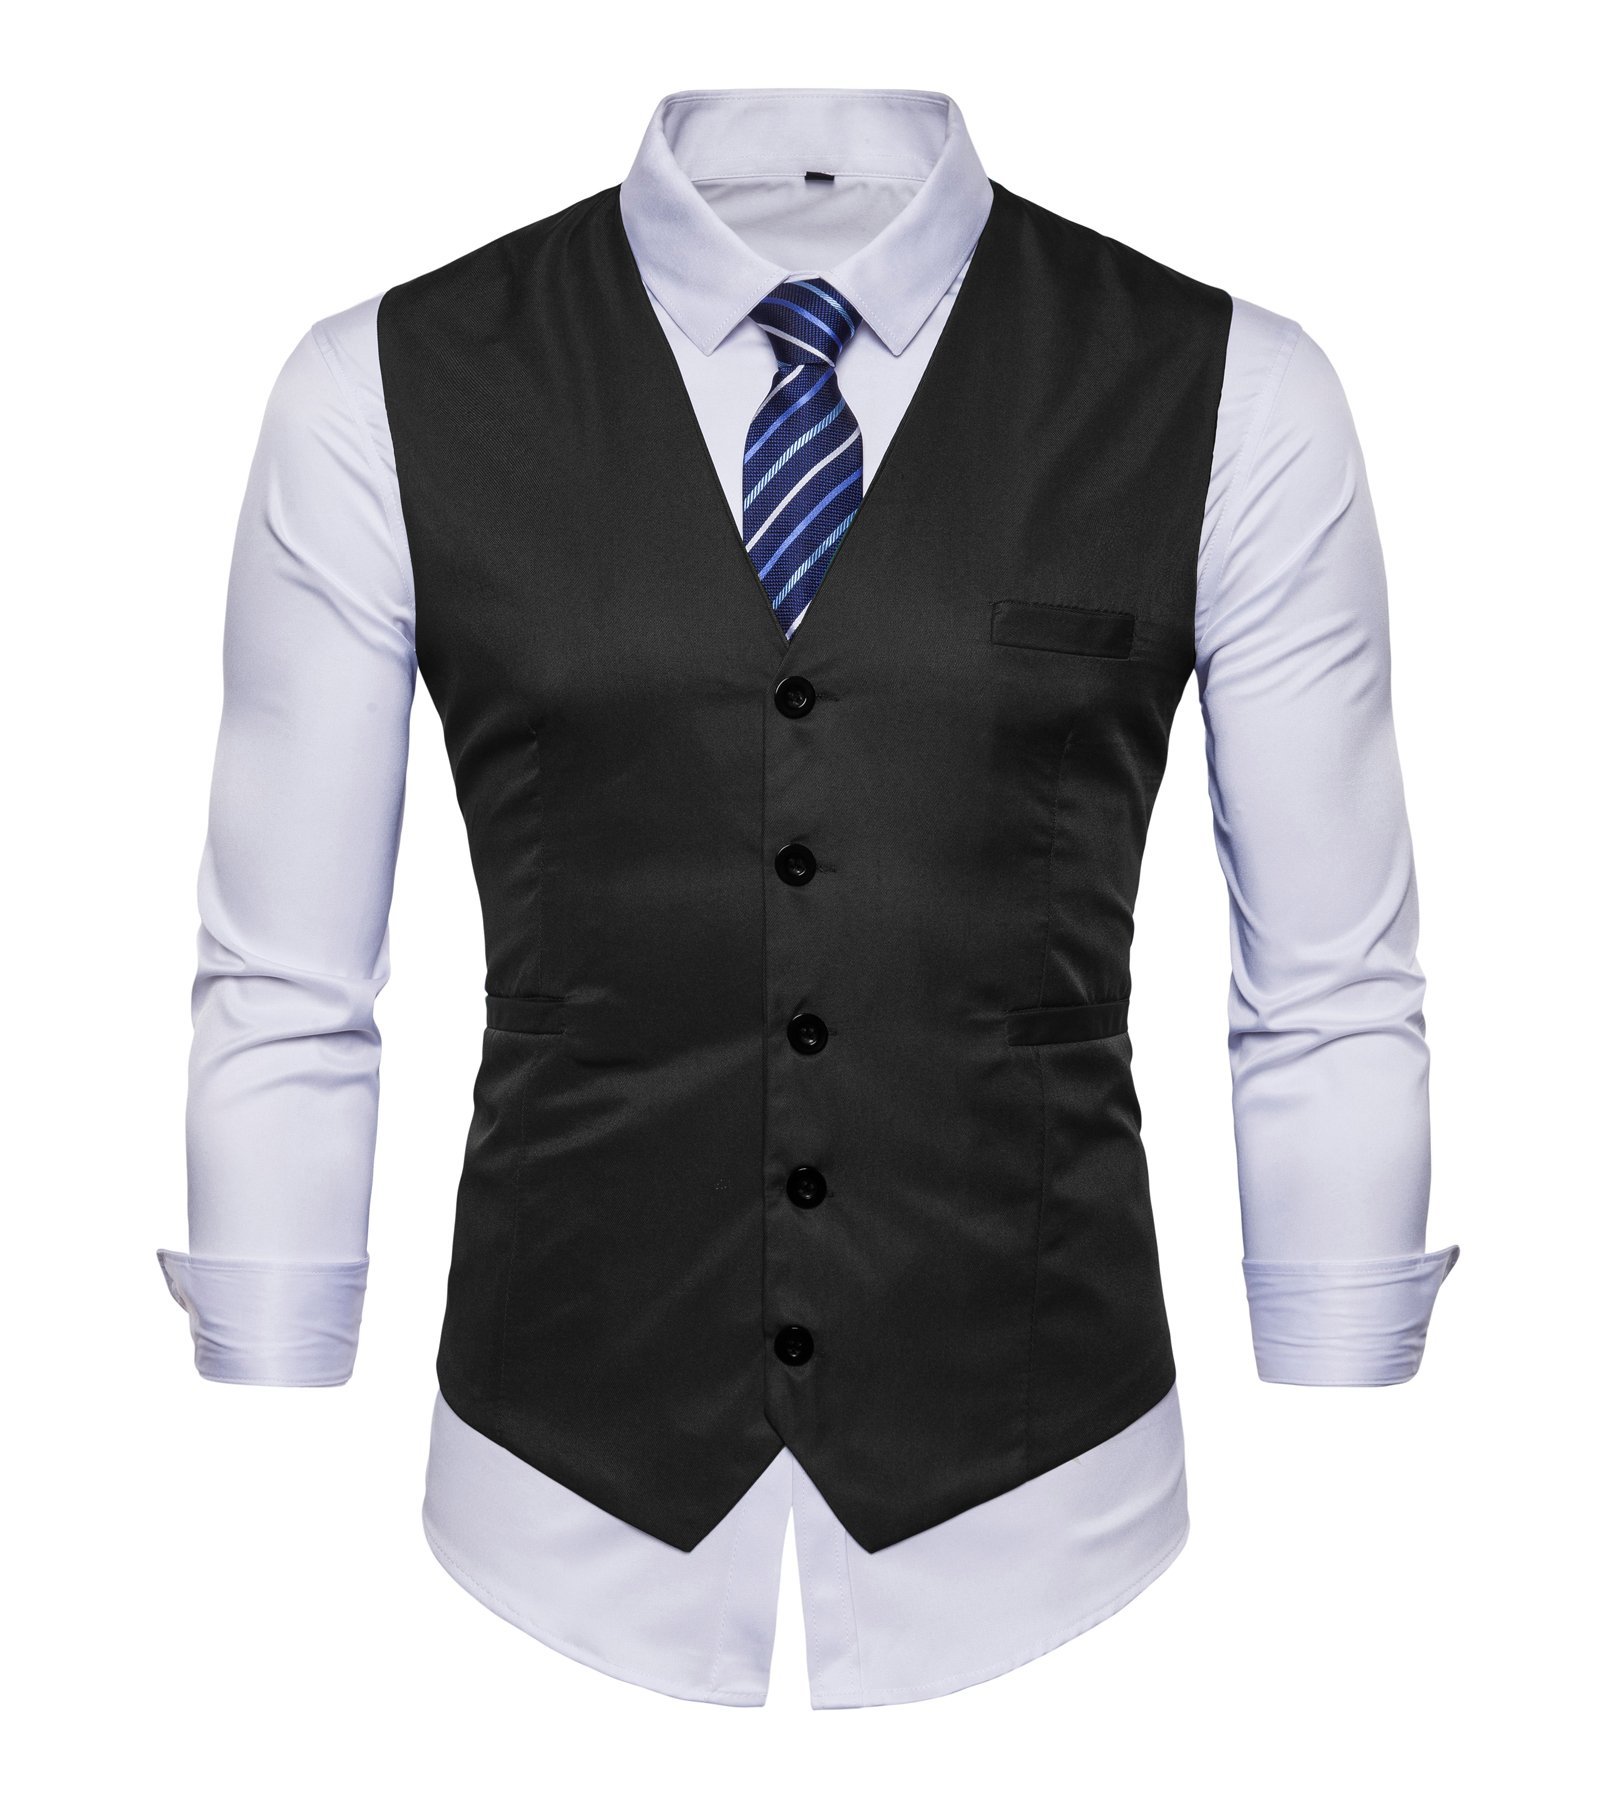 AOYOG Men's Business Suit Vests Waistcoat Slim Fit for Suit Or Tuxedo, Black, X-Large by AOYOG